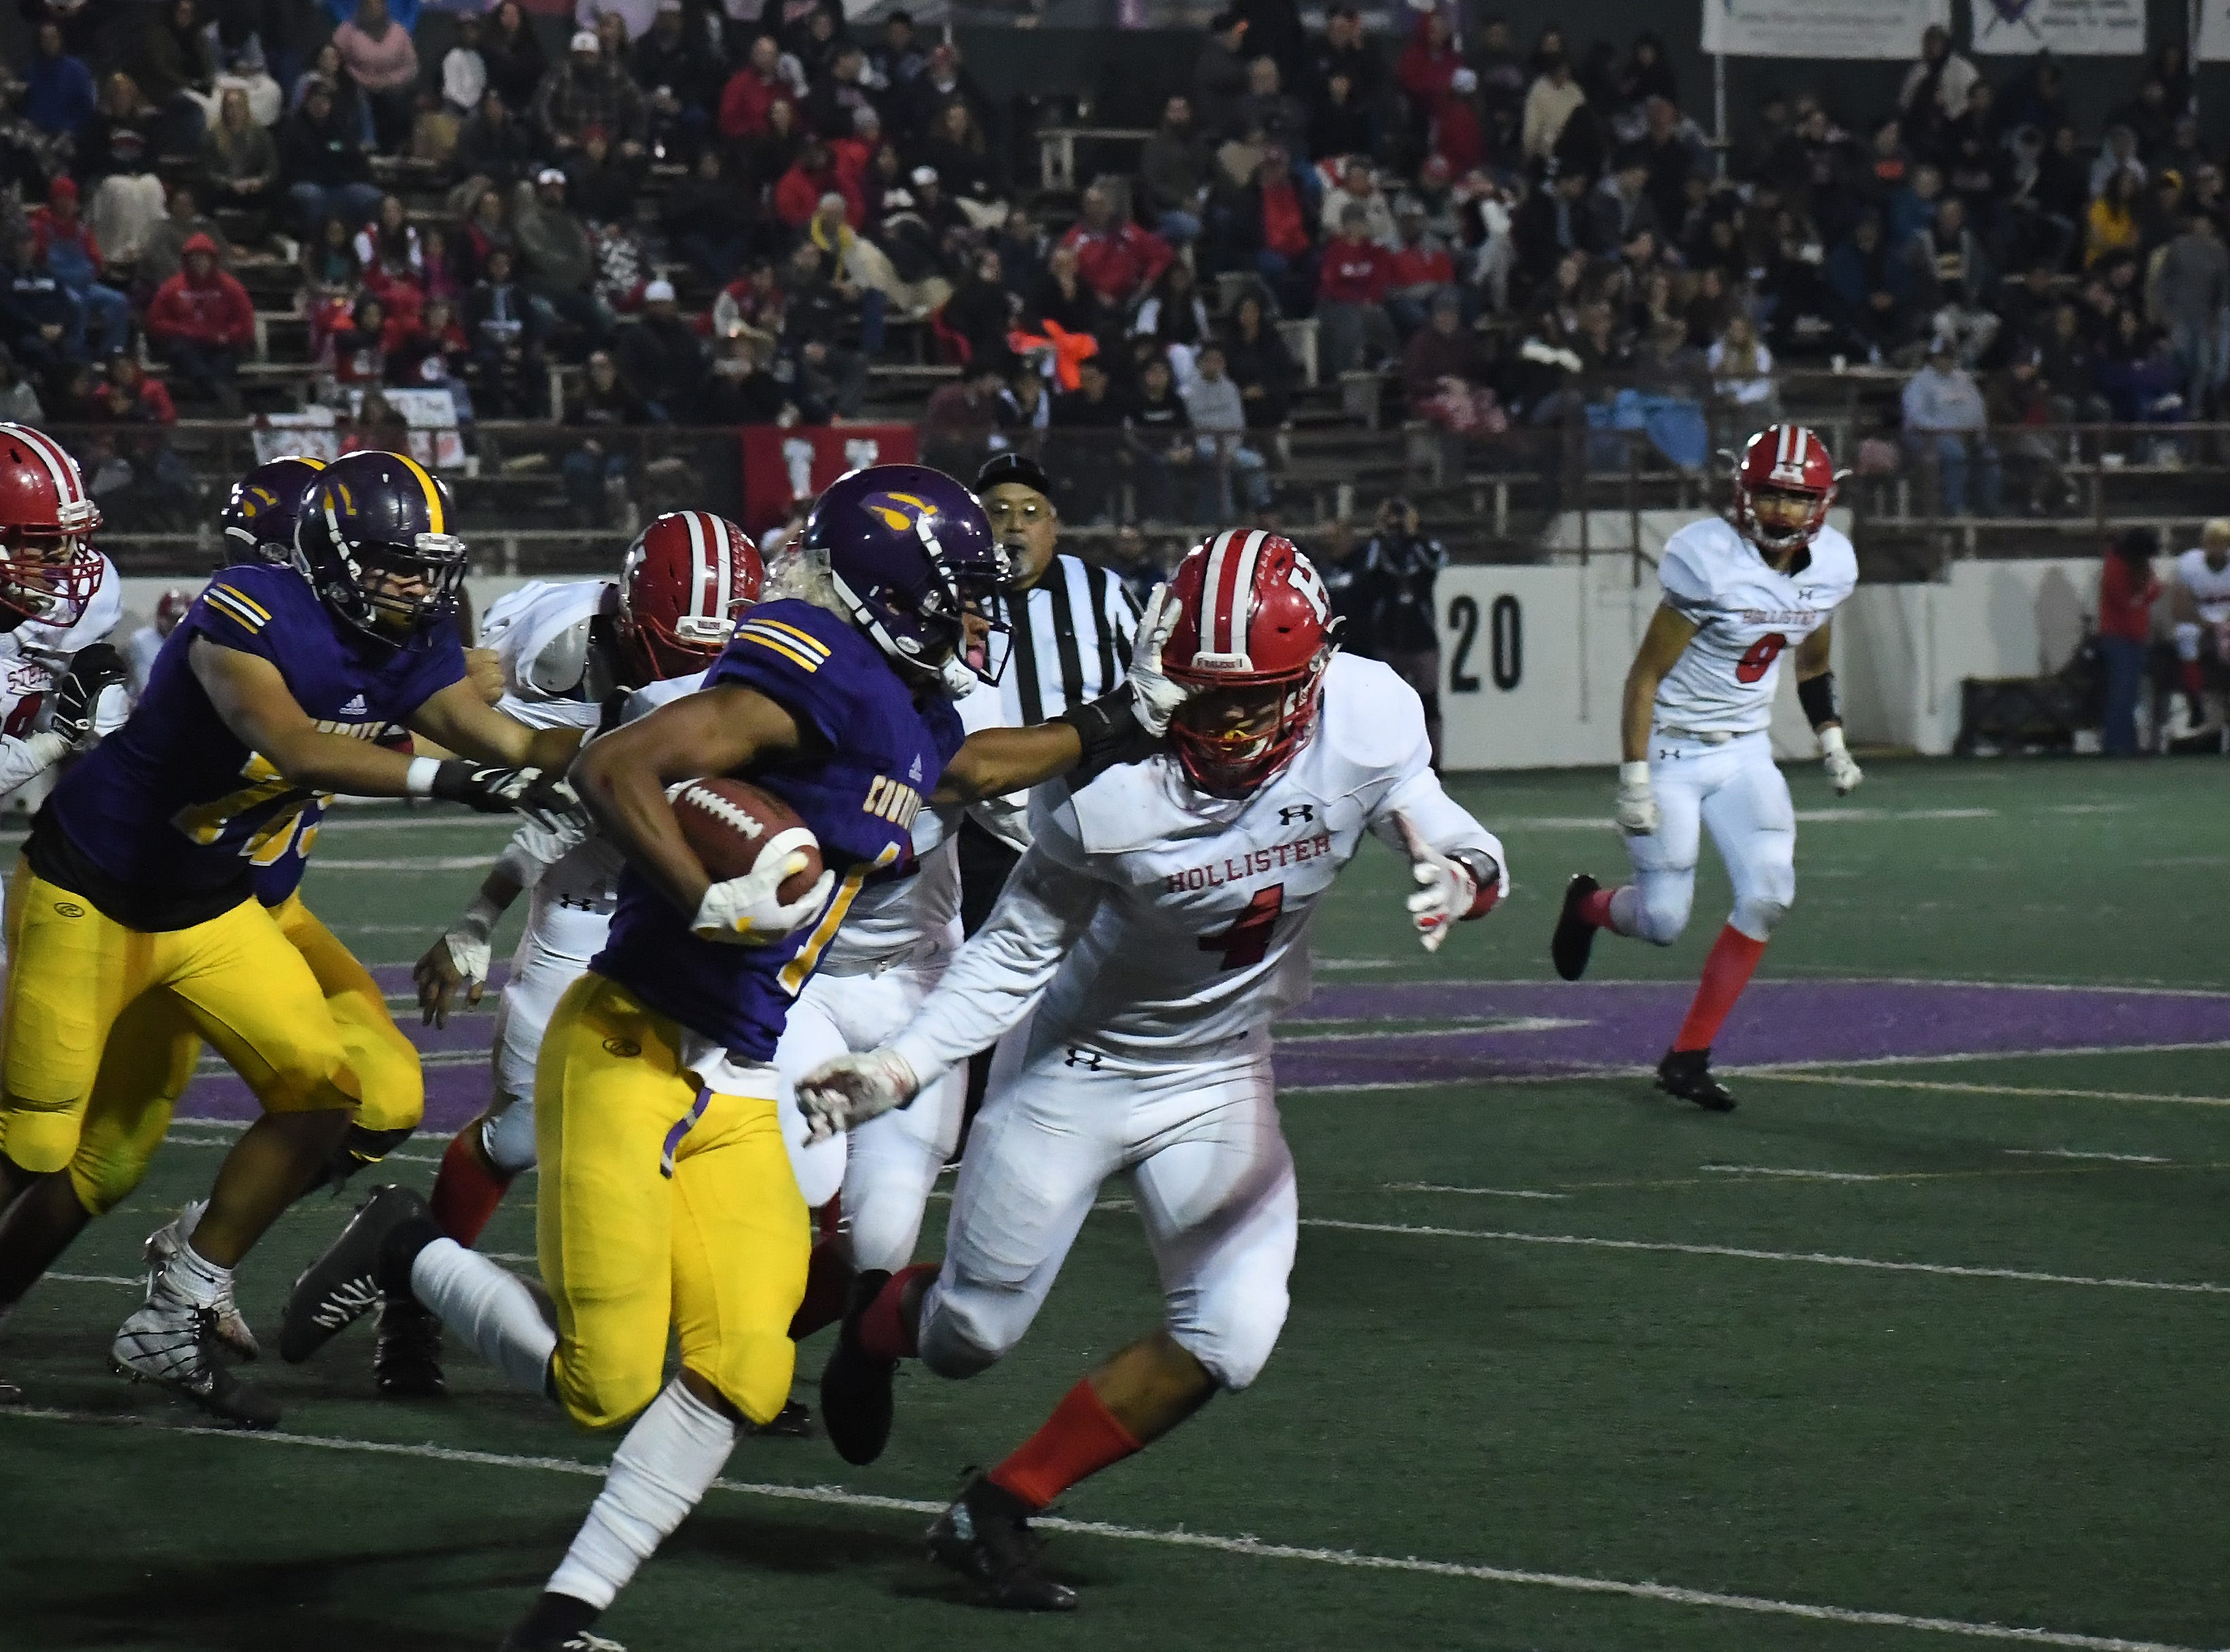 Wide receiver Poe Gaskins (1) stiff arms a would-be tackler.